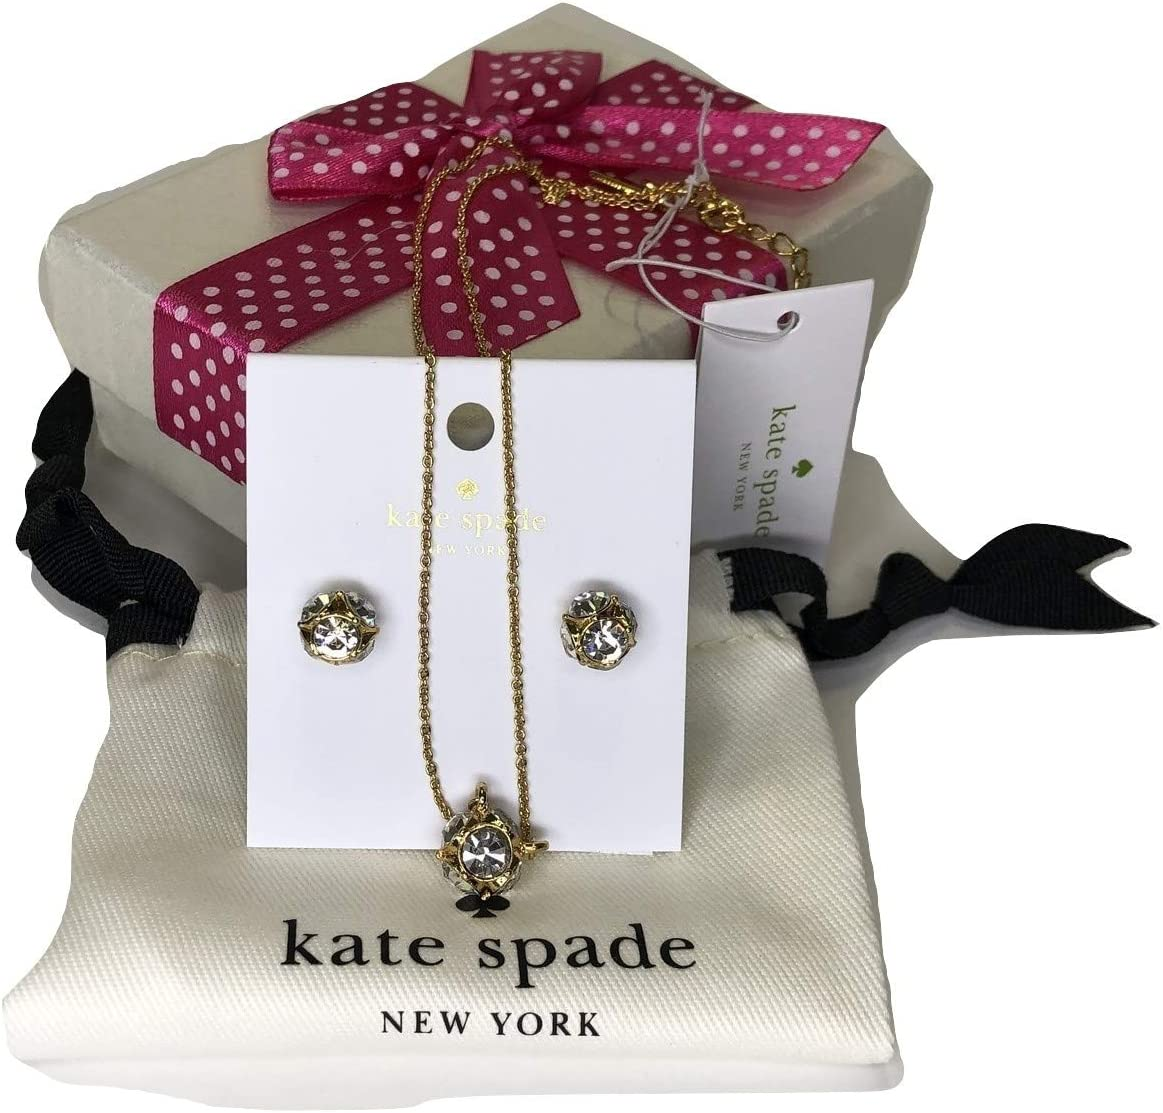 Kate Spade New York Marmalade Necklace Bundled with Kate Spade Marmalade Stud Earrings Clear/Gold